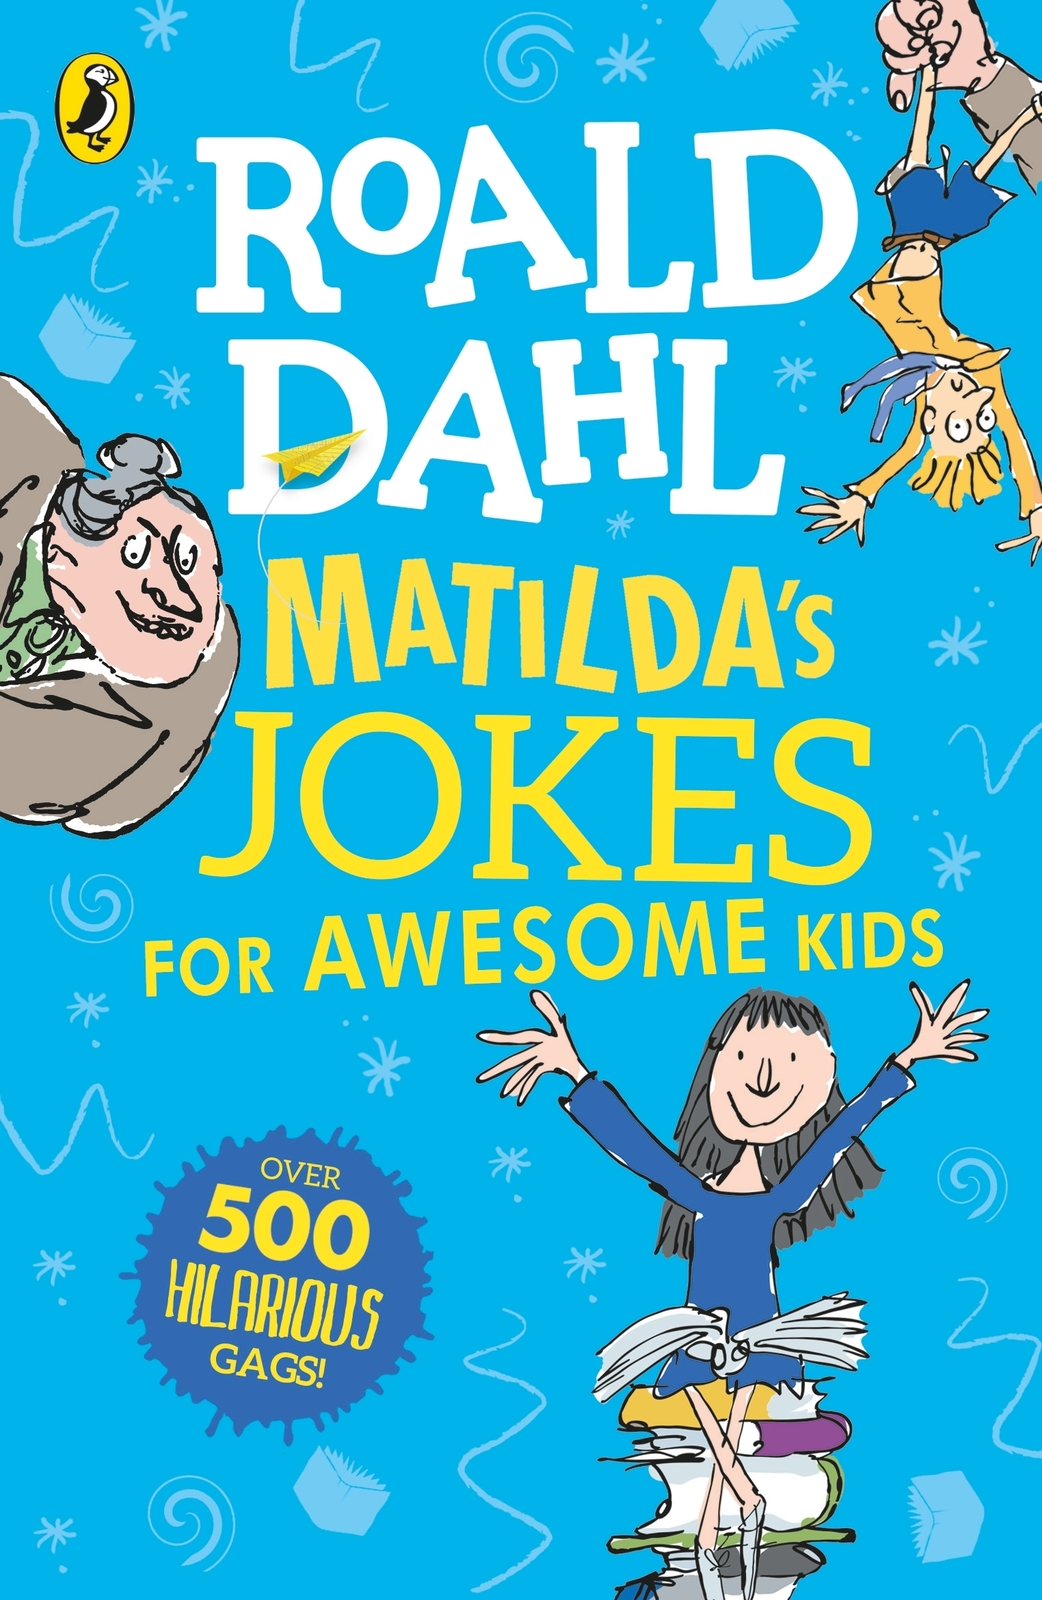 Matilda's Jokes For Awesome Kids by Roald Dahl image